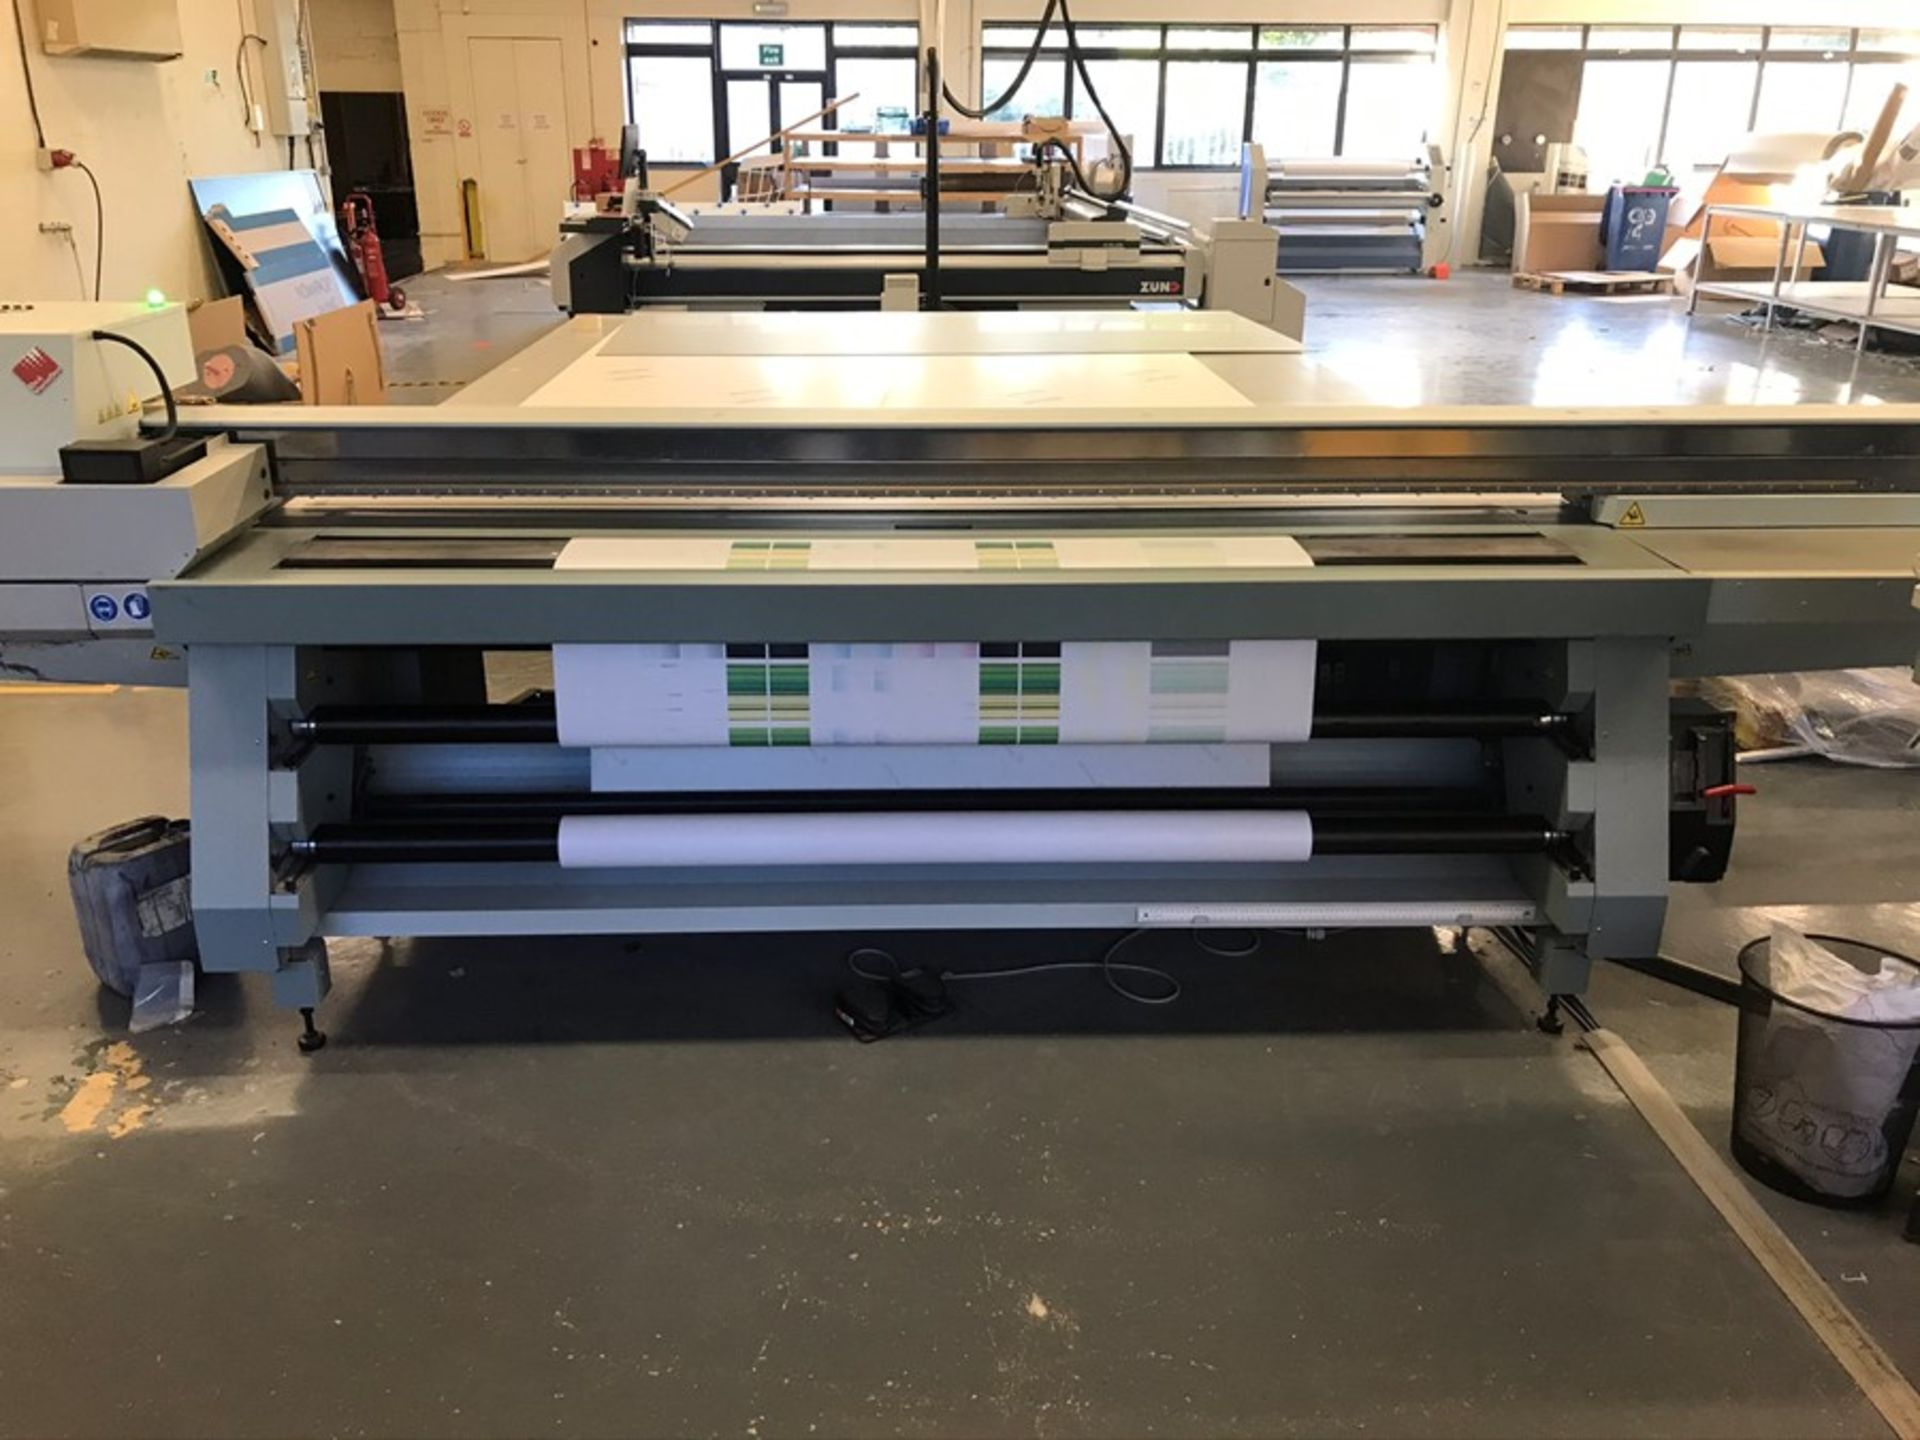 Oce Arizona 660 XT UV flatbed printer (2015) - Image 9 of 22